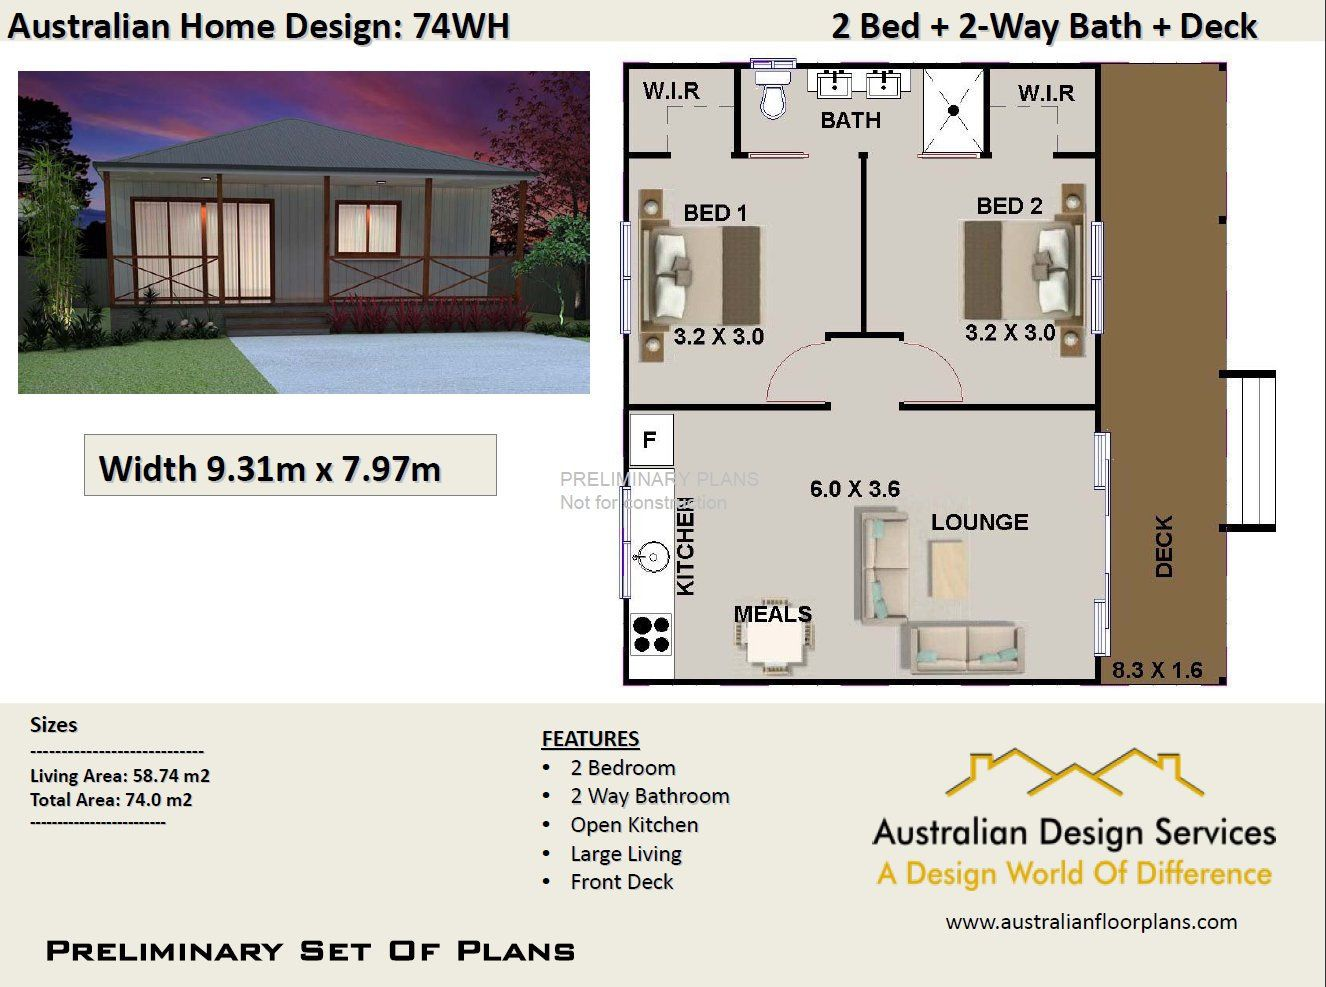 775 Sq Ft 58 M2 Australian 2 Bedroom Concept Plans 2 Etsy House Plans Australia House Plans Bedroom Floor Plans